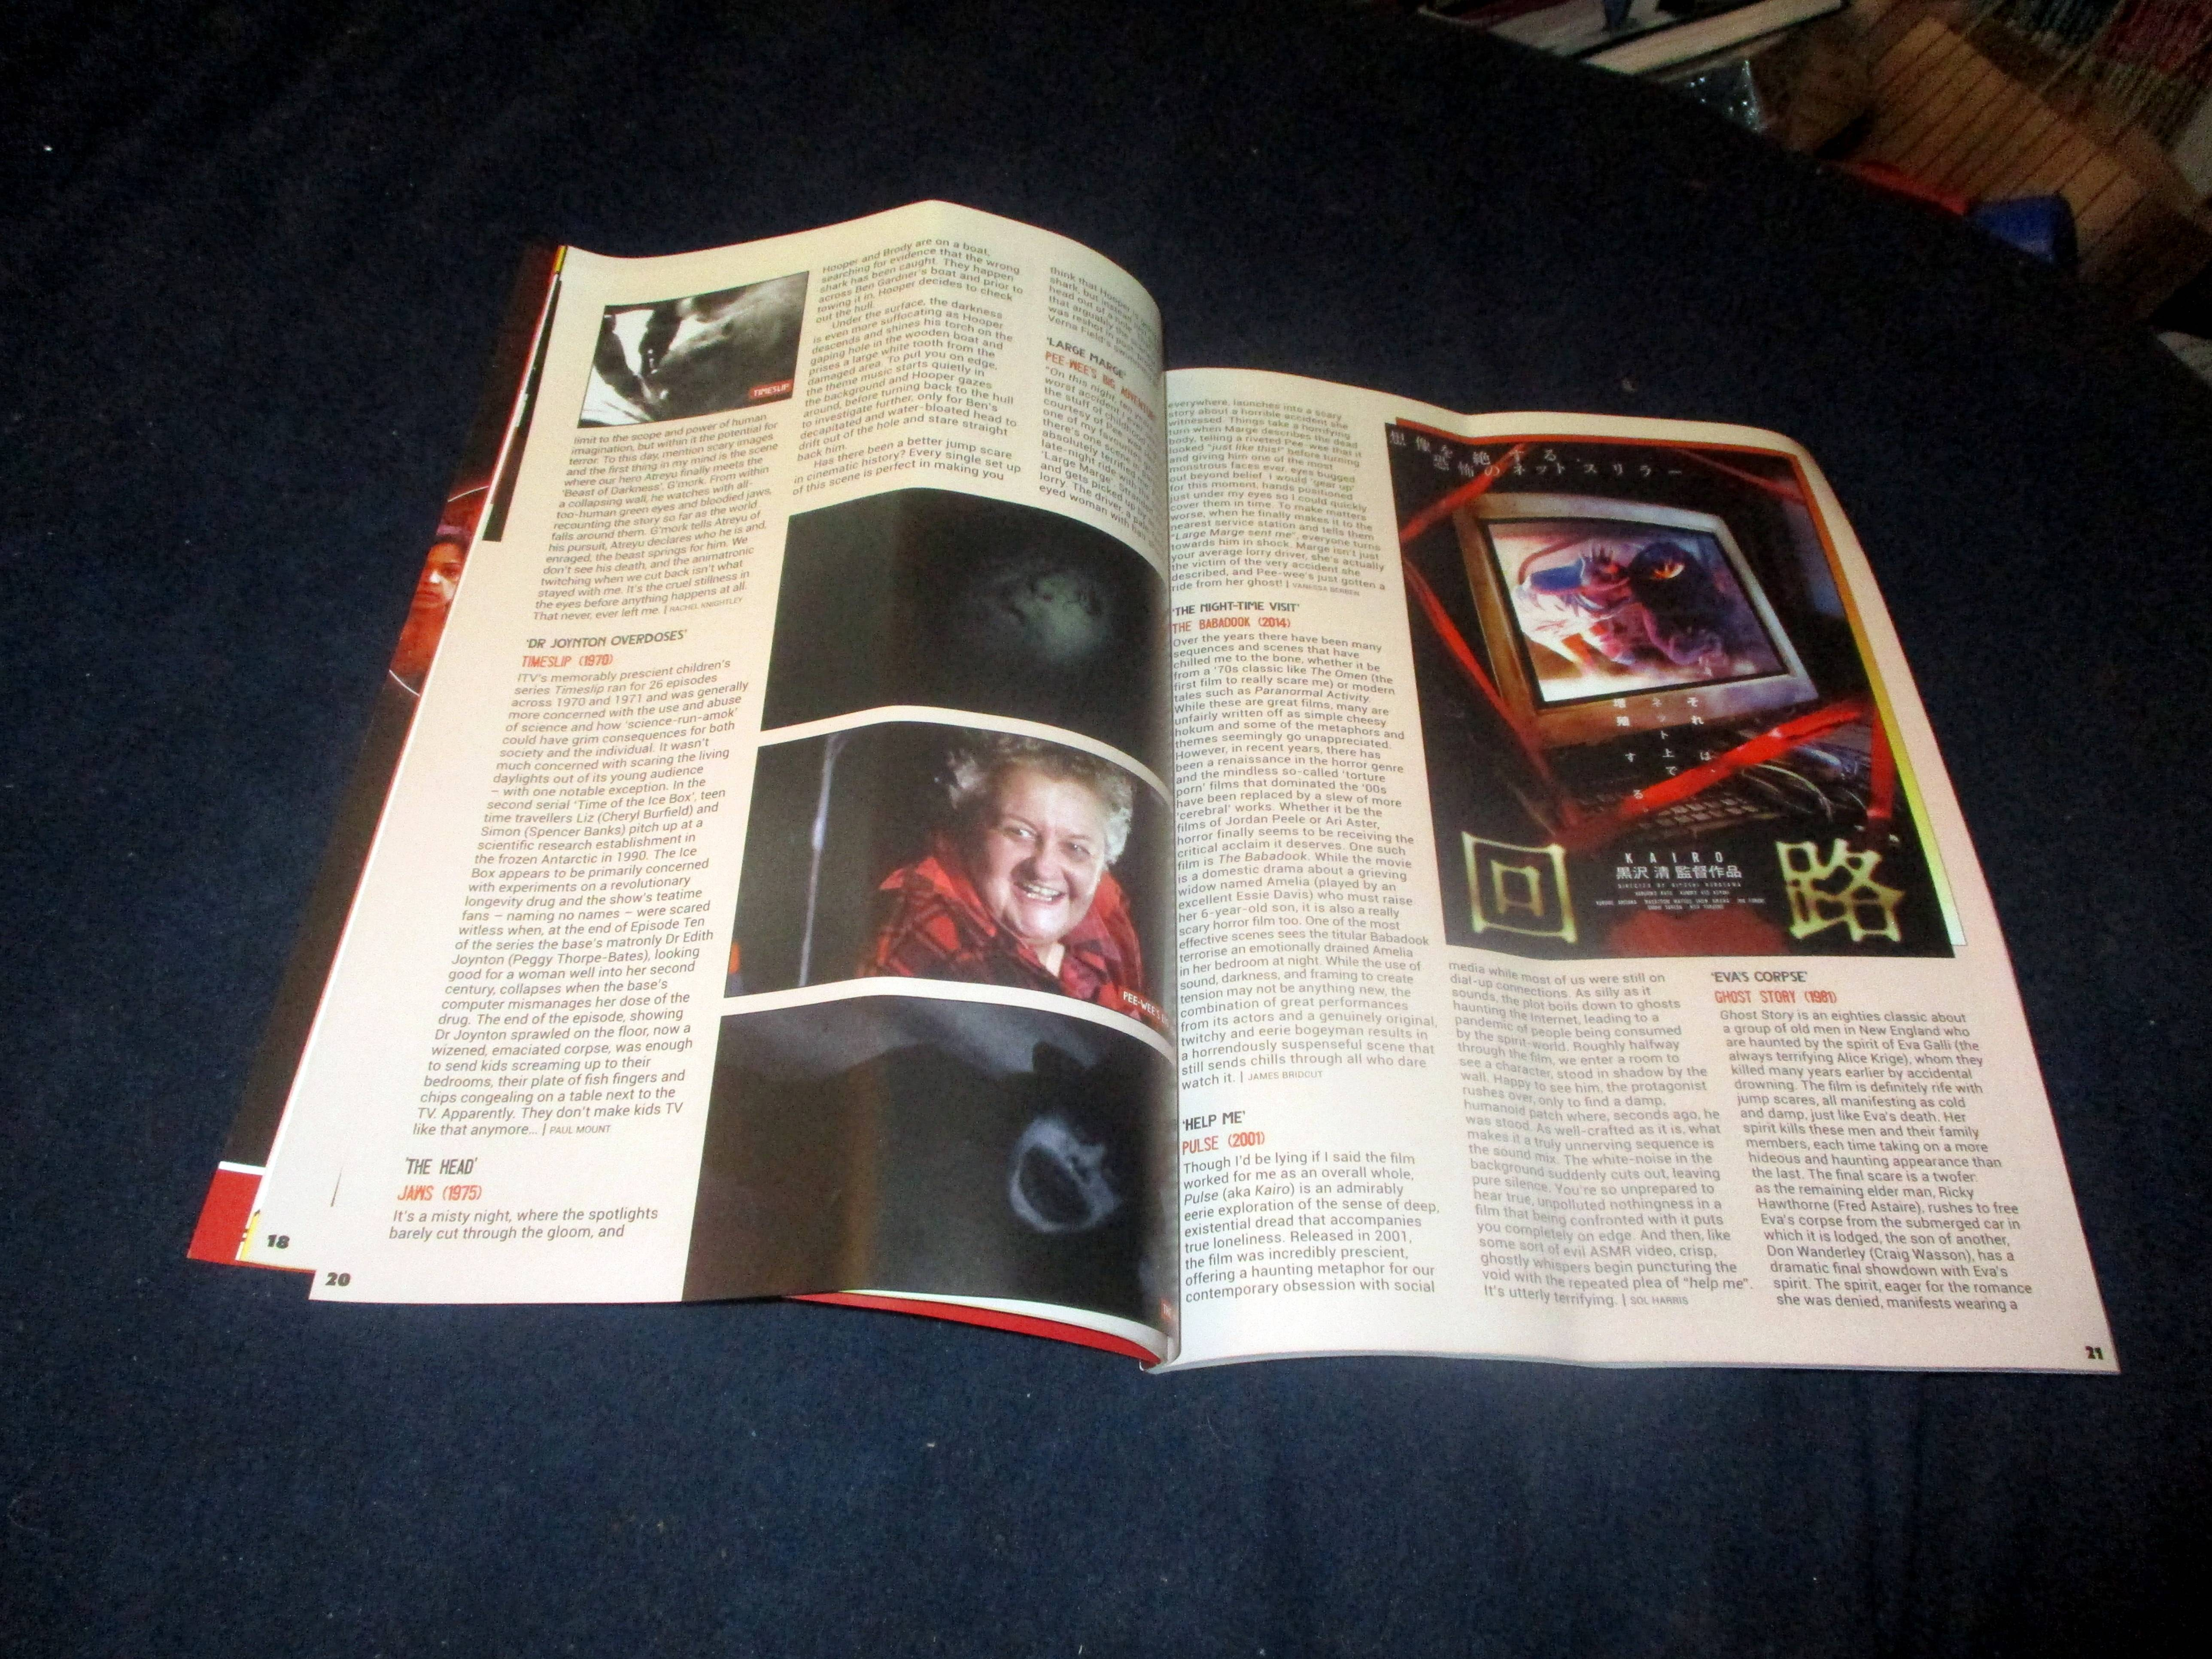 Page Spread with First Portion of Eva's Corpse in Everyone's Entitled to One Good Scare in Starburst Magazine #474: Everyone's Entitled to One Good Scare Collectors' Edition at The Wombatorium 2.0: A Capital Idea